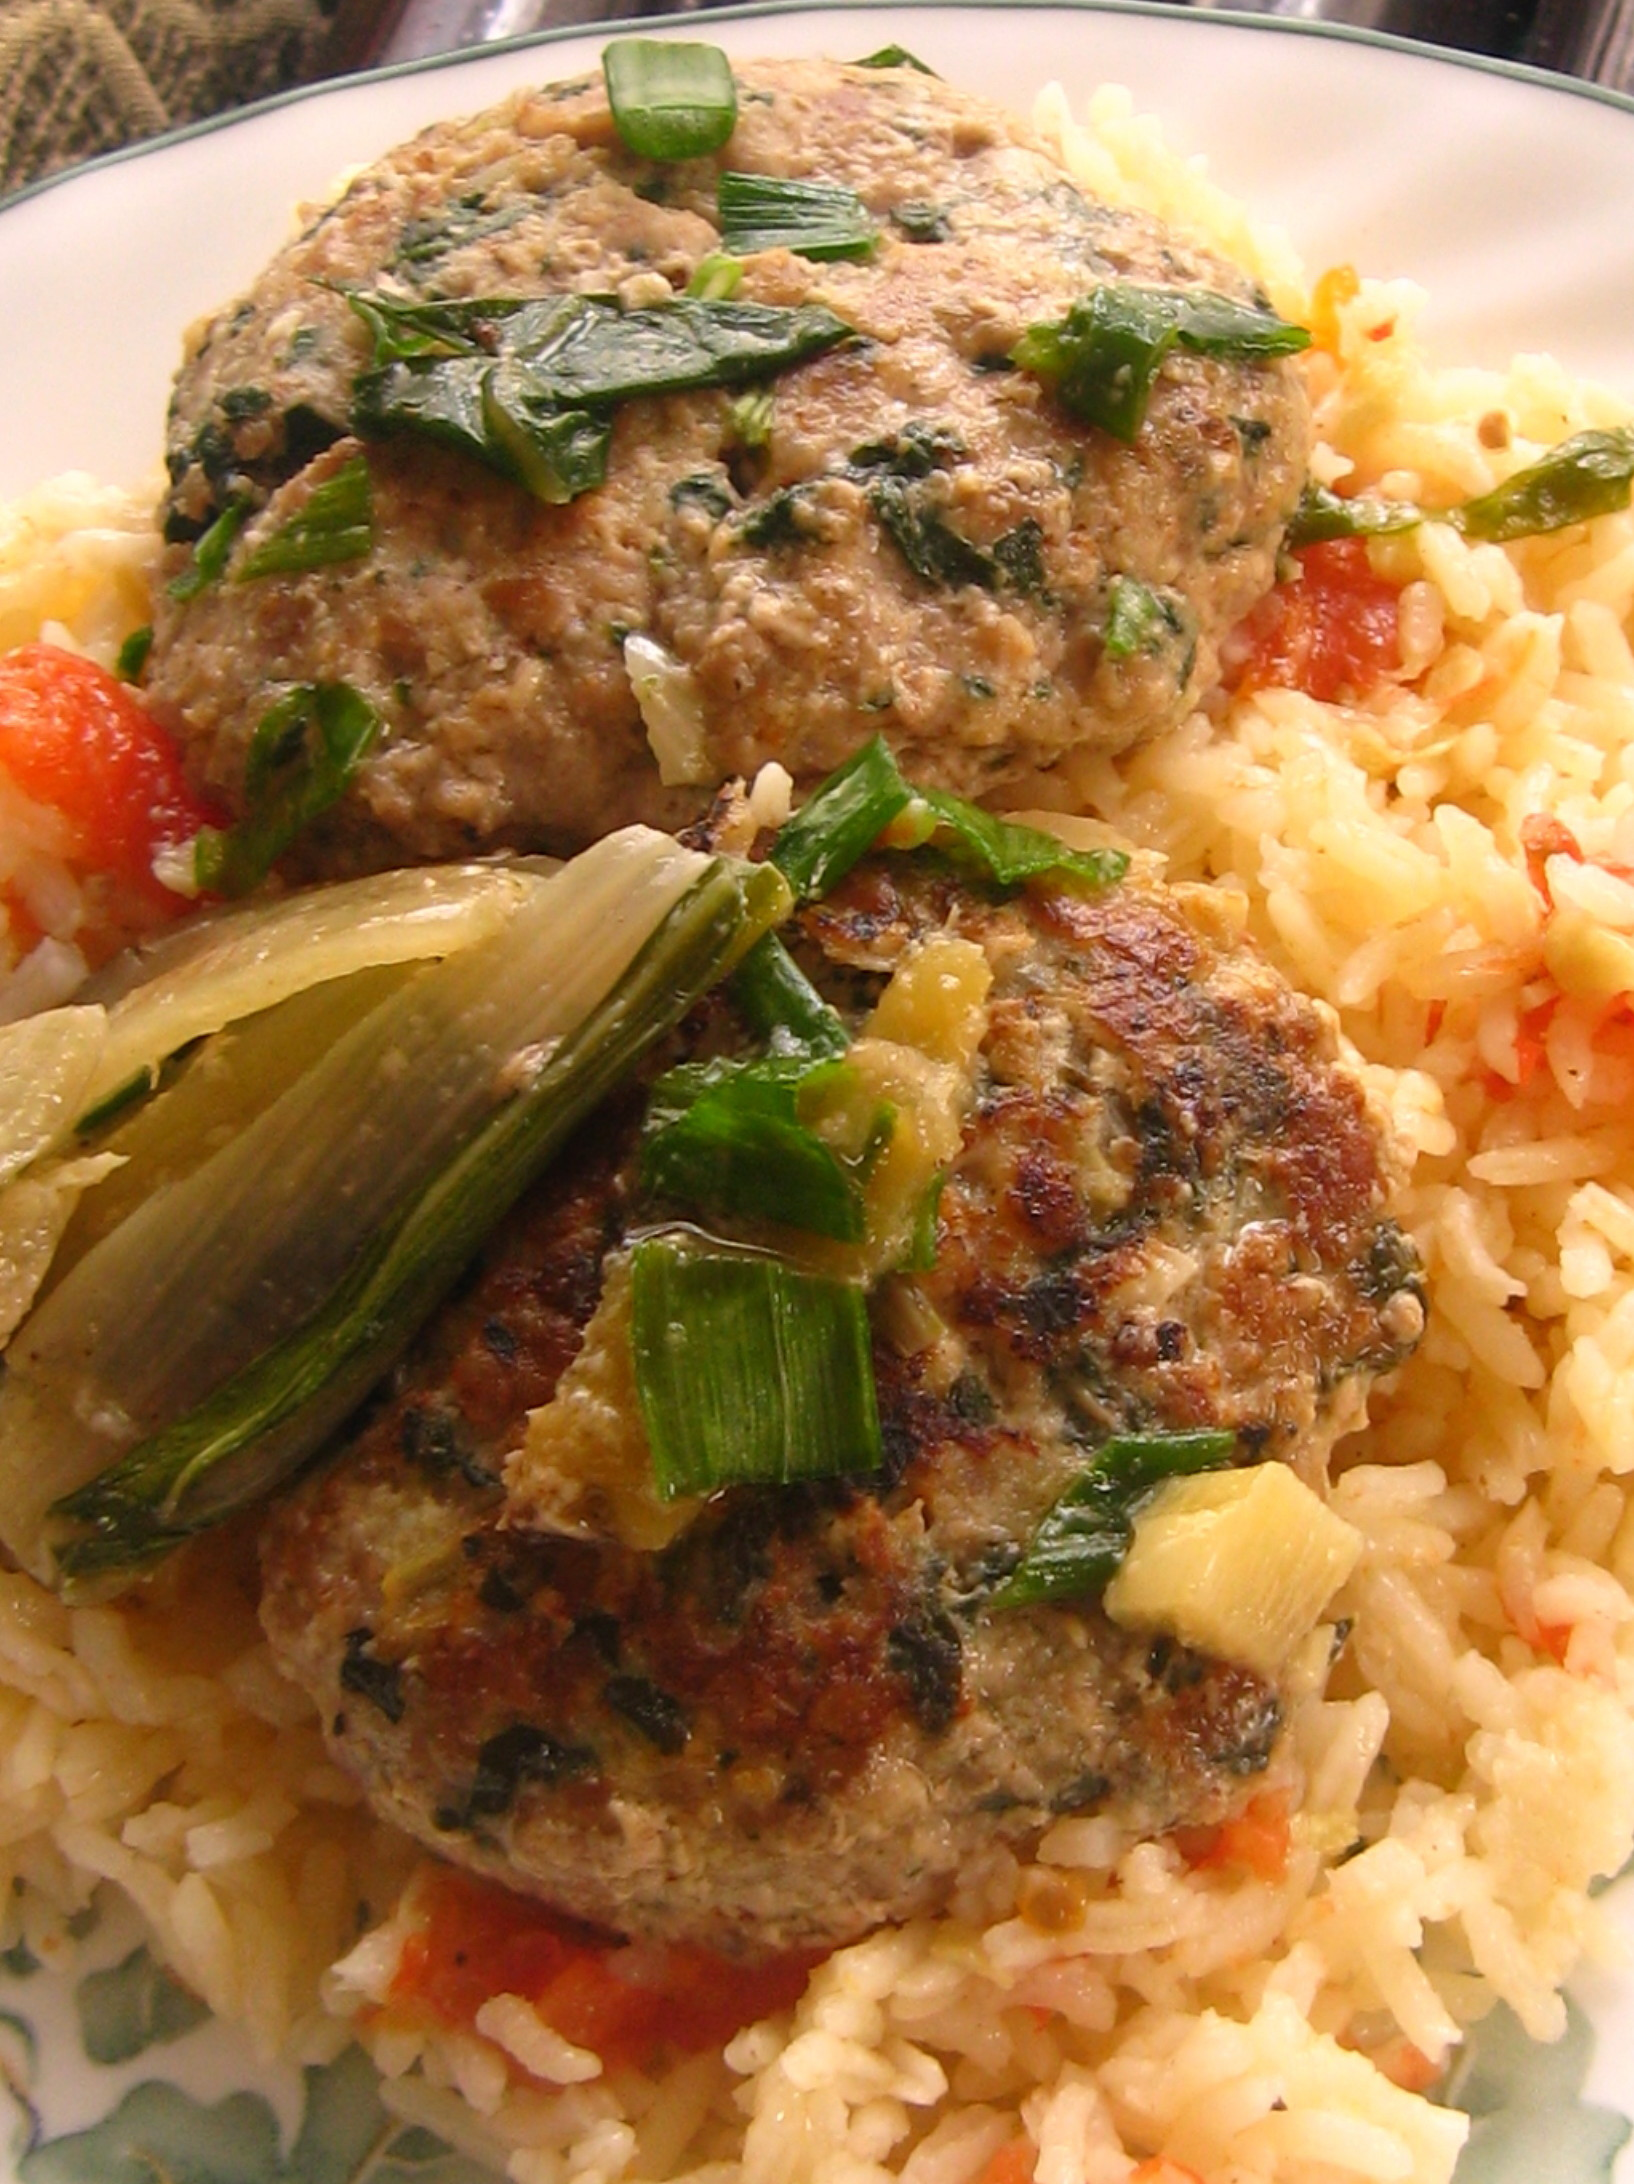 RECIPE: Turkish Meatballs And Swiss Chard